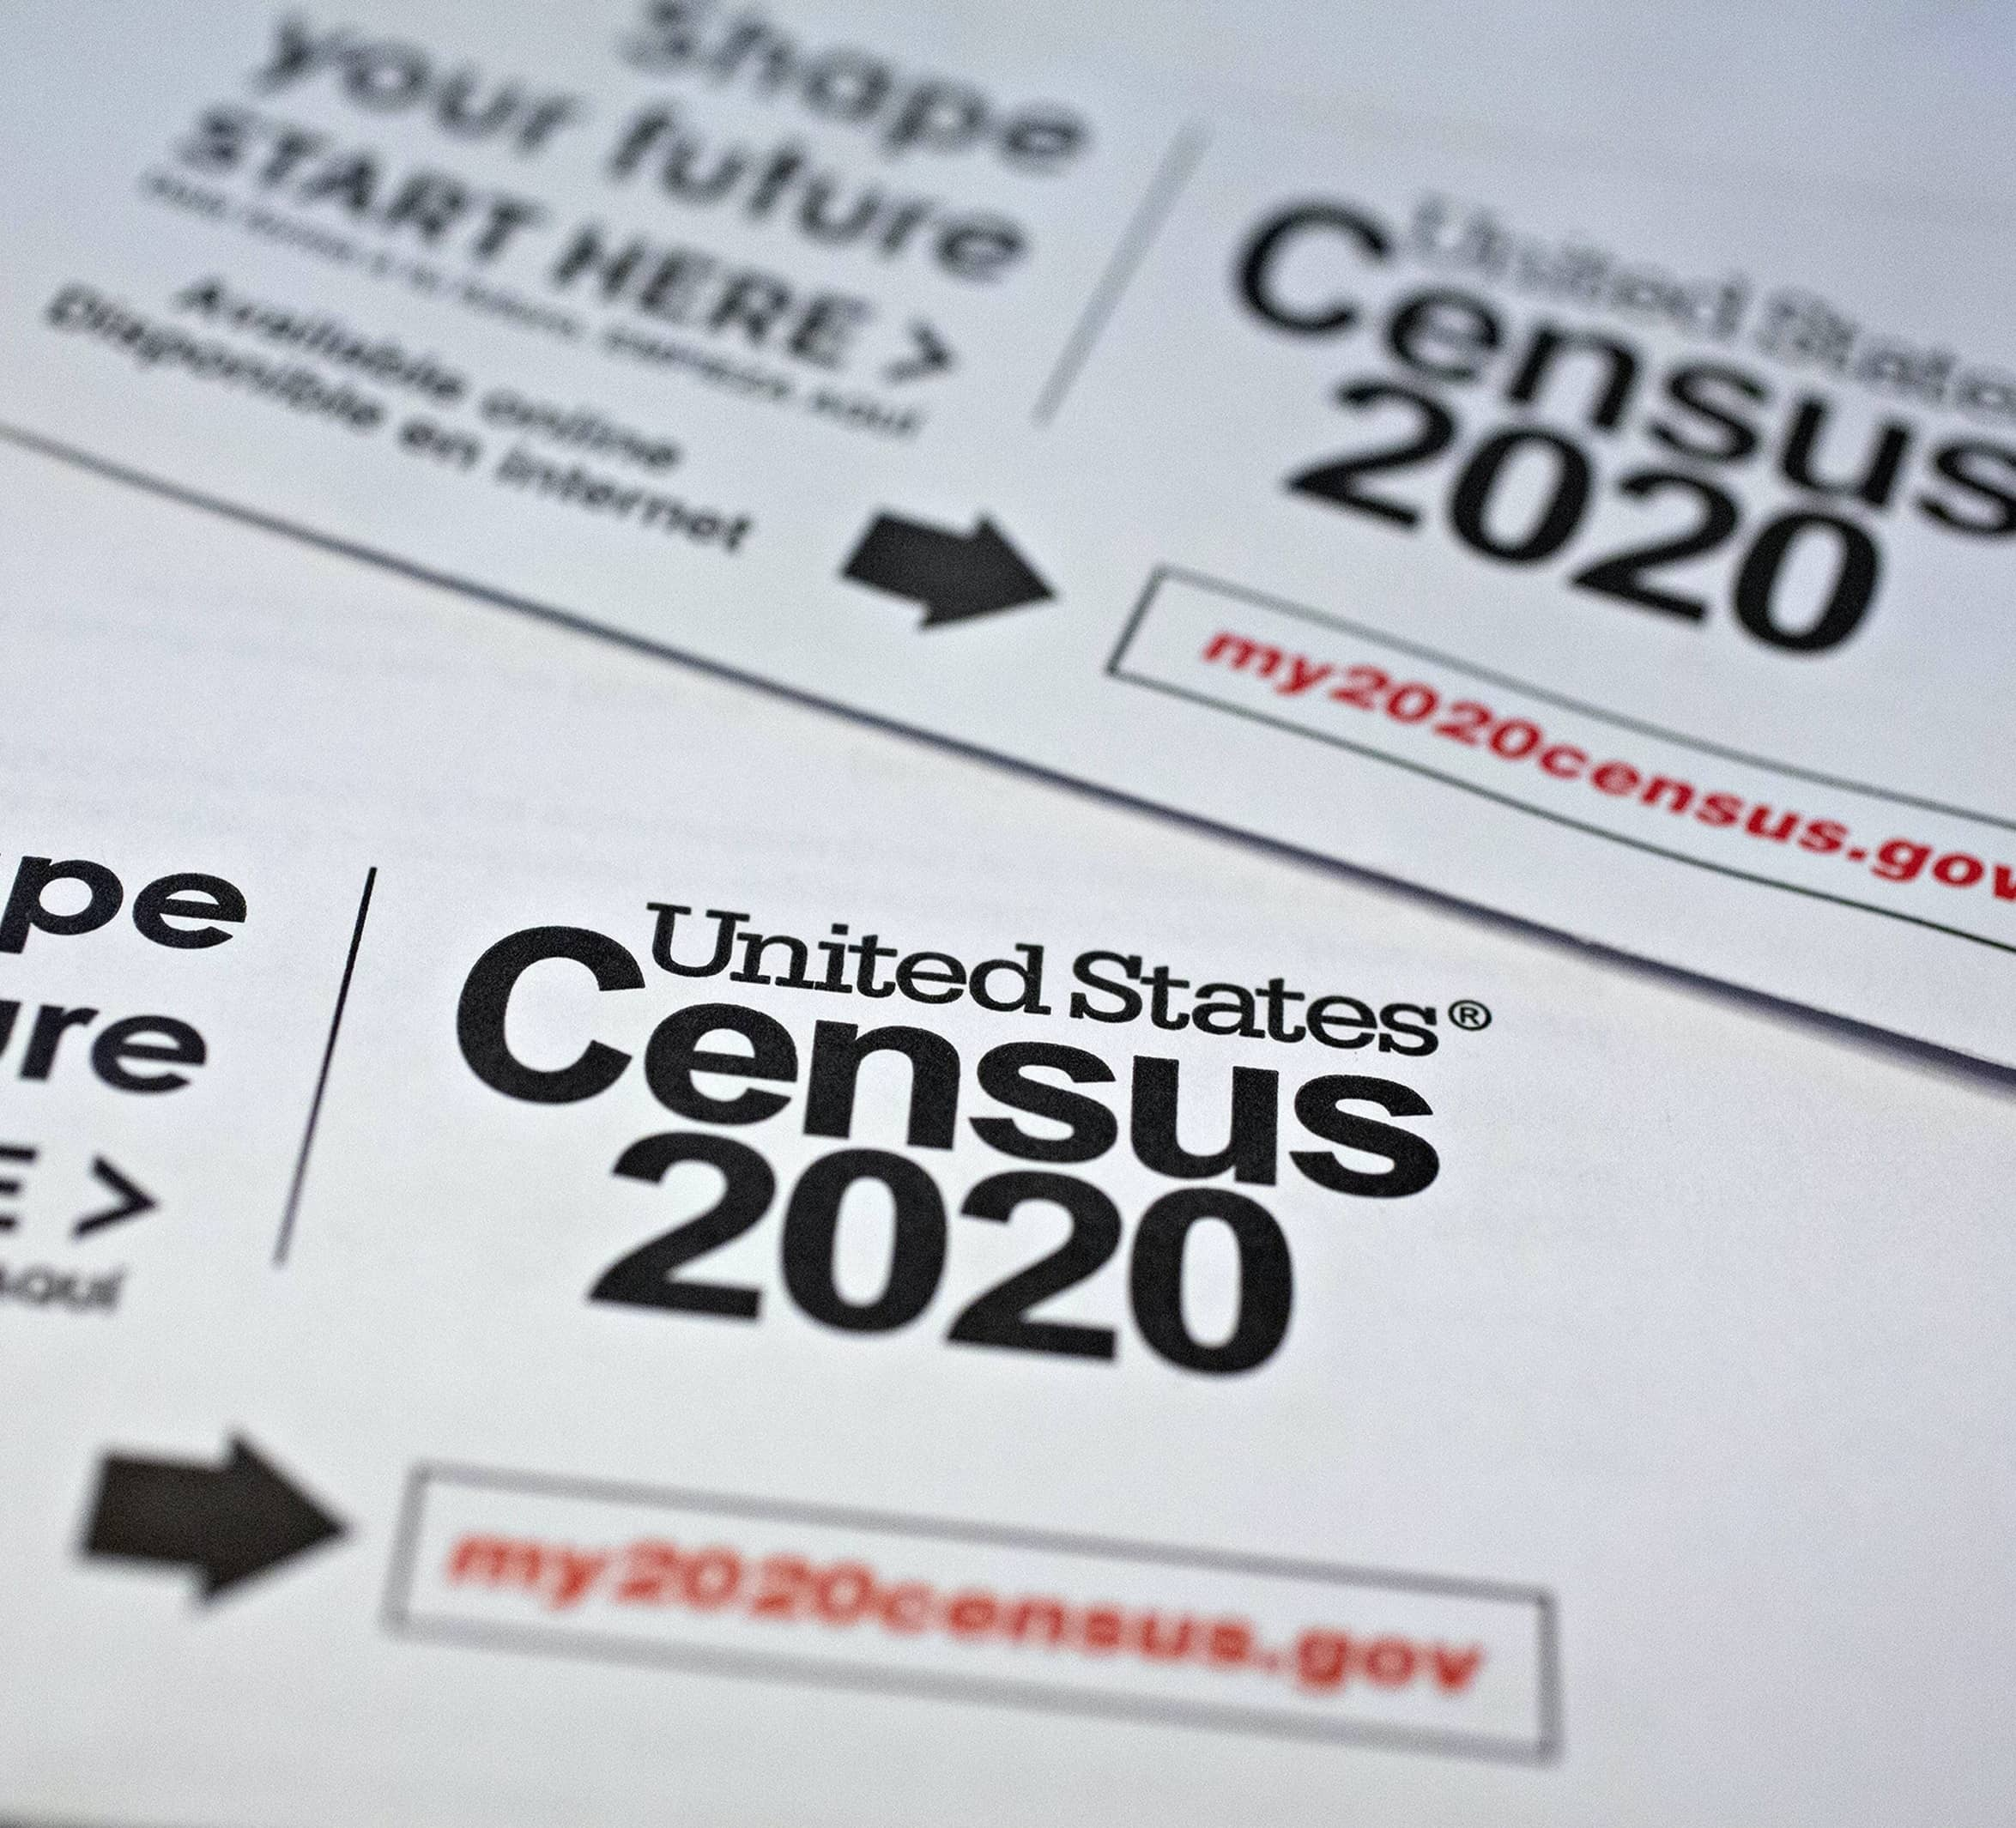 Census Says Deadline Can Be Reached With Tech, Nonstop Work